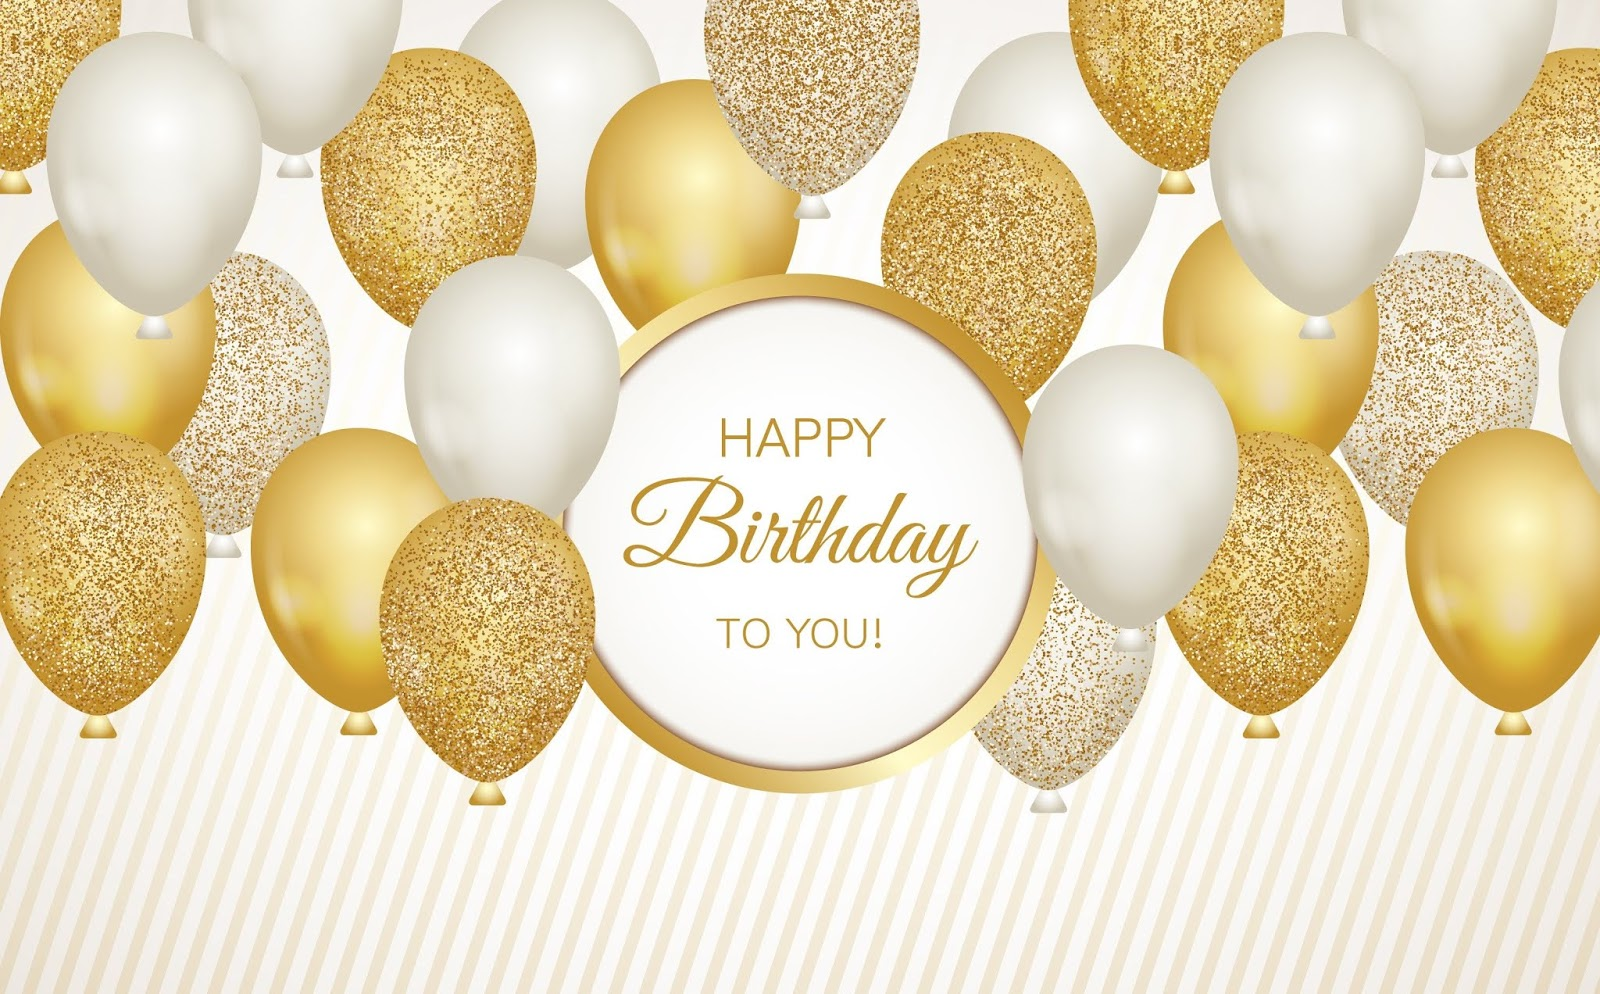 Happy Birthday Best Wishes Quote Image Birthday Card And